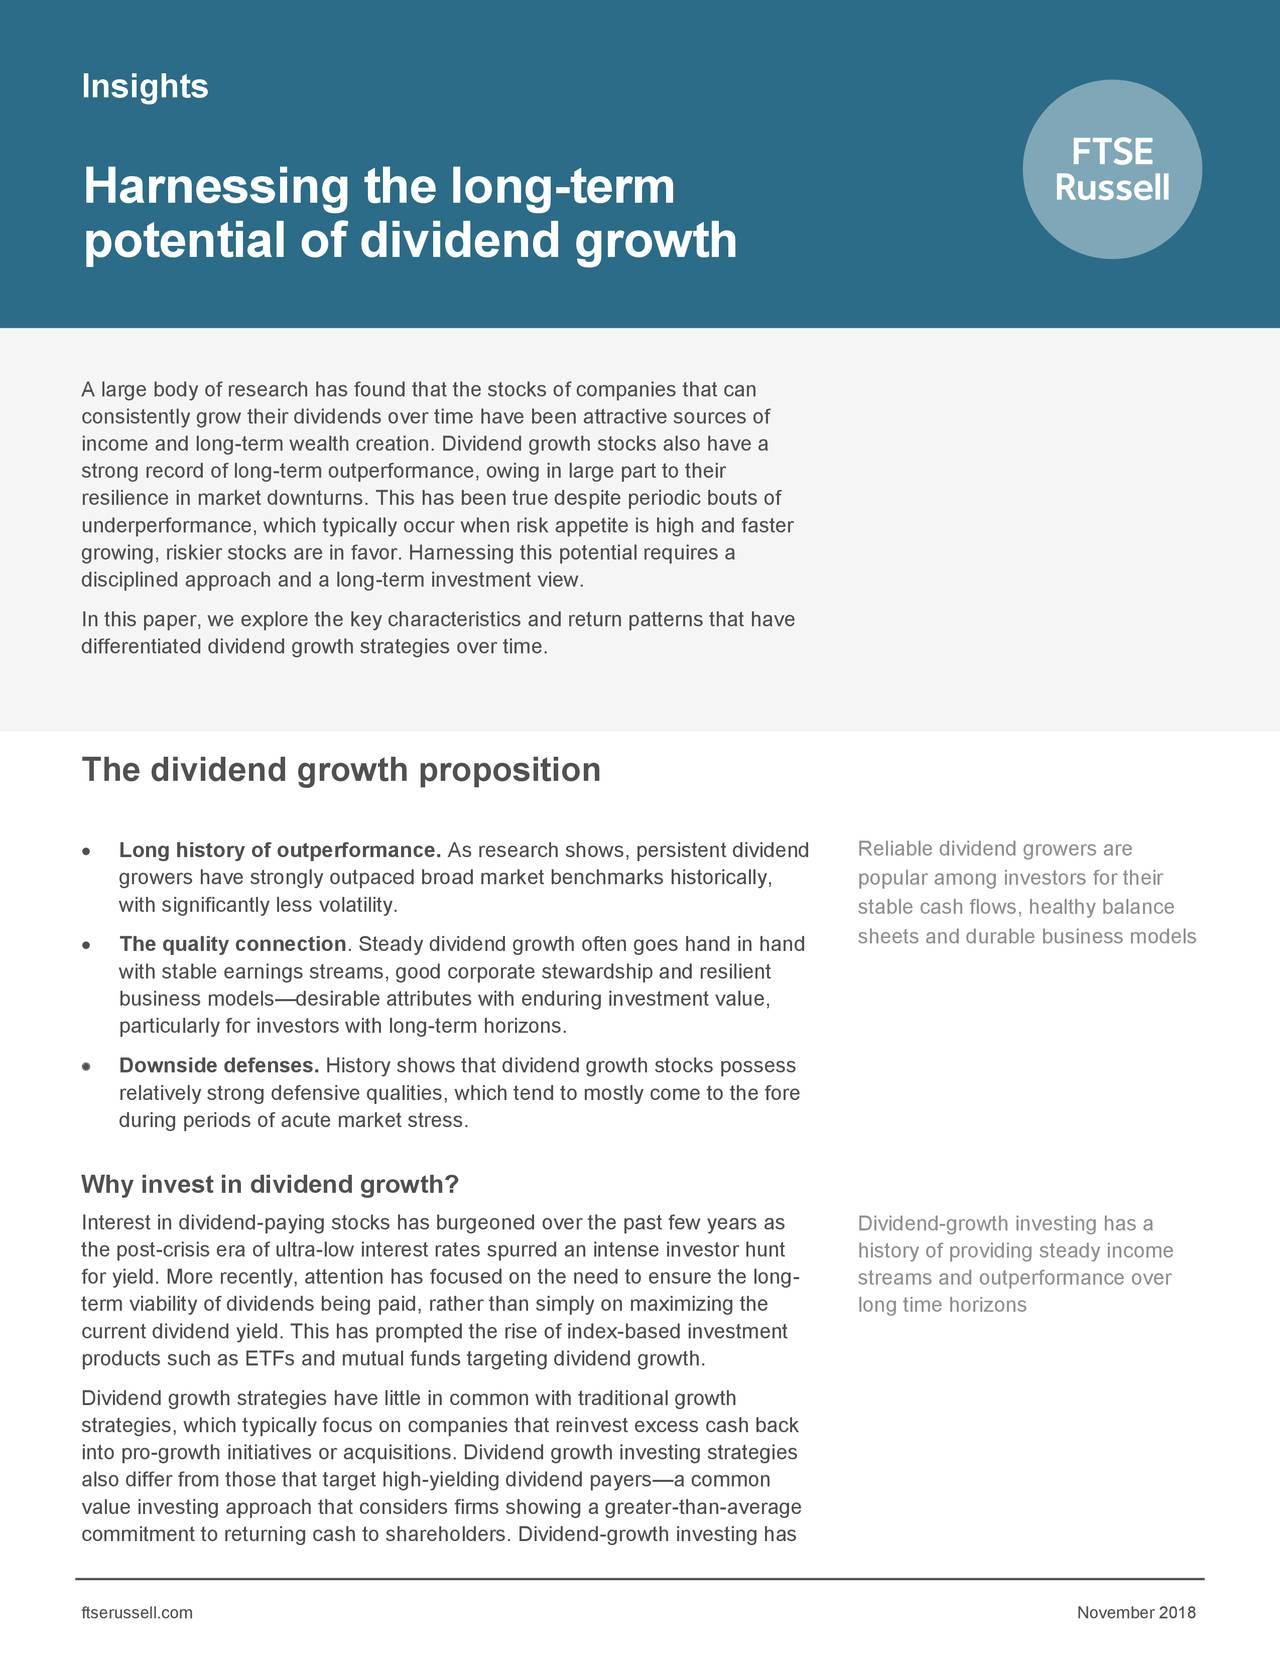 Harnessing the long-term potential of dividend growth A large body of research has found that the stocks of companies that can consistently grow their dividends over time have been attractive sources of income and long-term wealth creation. Dividend growth stocks also have a strong record of long-term outperformance, owing in large part to their resilience in market downturns. This has been true despite periodic bouts of underperformance, which typically occur when risk appetite is high and faster growing, riskier stocks are in favor. Harnessing this potential requires a disciplined approach and a long-term investment view. In this paper, we explore the key characteristics and return patterns that have differentiated dividend growth strategies over time. The dividend growth proposition • Long history of outperformance. As research shows, persistent dividend Reliable dividend growers are growers have strongly outpaced broad market benchmarks historically, popular among investors for their with significantly less volatility. stable cash flows, healthy balance • The quality connection. Steady dividend growth often goes hand in hand sheets and durable business models with stable earnings streams, good corporate stewardship and resilient business models—desirable attributes with enduring investment value, particularly for investors with long-term horizons. • Downside defenses. History shows that dividend growth stocks possess relatively strong defensive qualities, which tend to mostly come to the fore during periods of acute market stress. Why invest in dividend growth? Interest in dividend-paying stocks has burgeoned over the past few years as Dividend-growth investing has a the post-crisis era of ultra-low interest rates spurred an intense investor hunhistory of providing steady income for yield. More recently, attention has focused on the need to ensure the long-streams and outperformance over term viability of dividends being paid, rather than simply on maximizing th